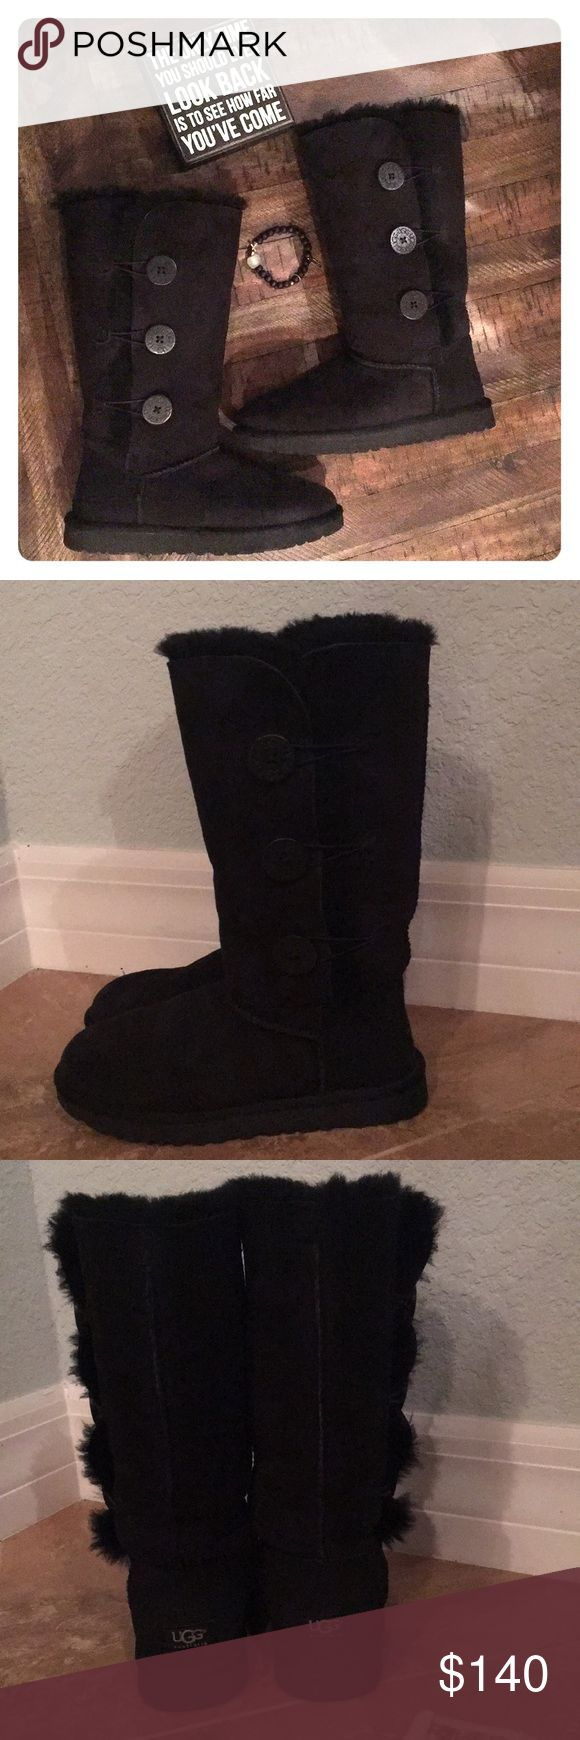 NWOT UGG Tall Bailey Button Boots Black Gorgeous authentic black Tall Bailey Button UGG boots. Worn ONCE indoors. Purchased at Nordstrom then moved to sunny Florida so don't have a need for them now! Can also be worn folded down (see photos) You will not be disappointed! Paid $220 ⭐️Thanks for looking! UGG Shoes Winter & Rain Boots